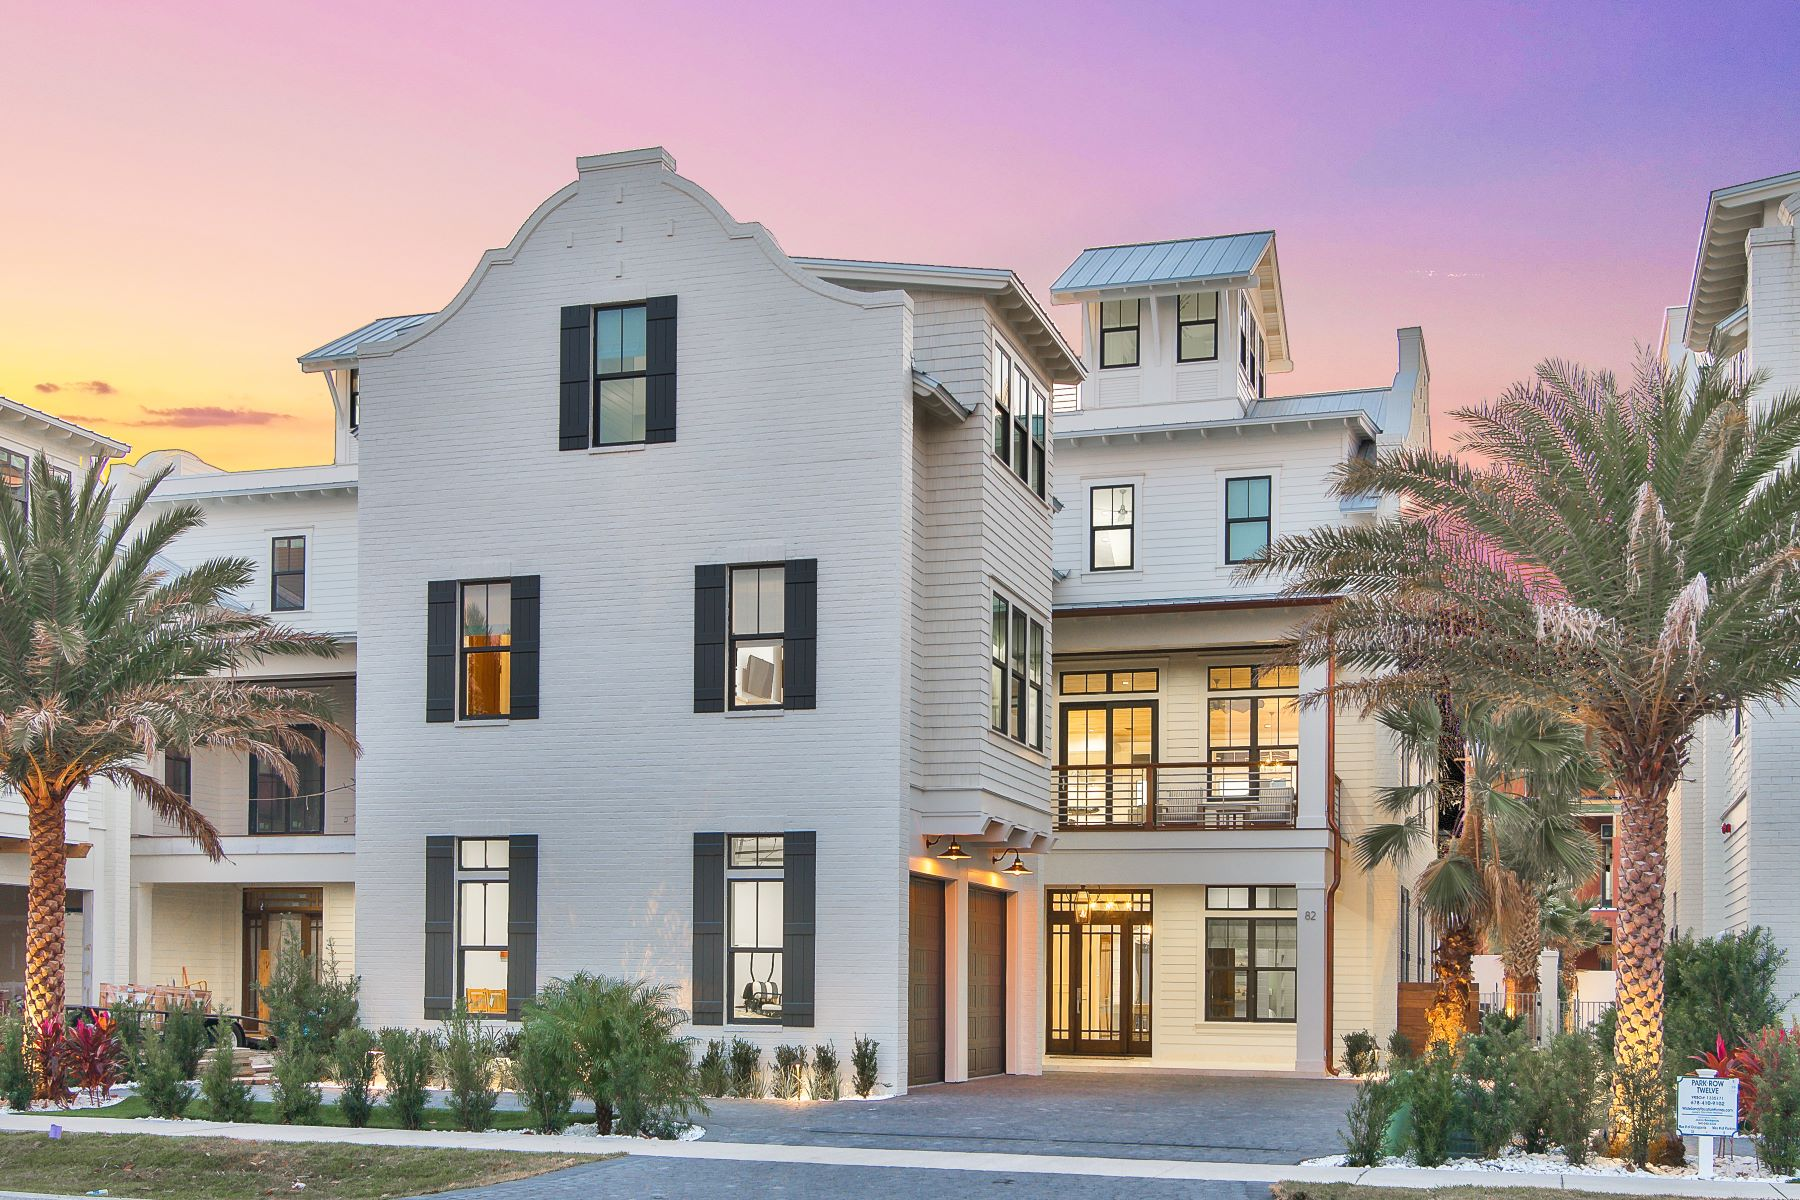 Single Family Homes for Sale at Brand New Beachside Retreat in Park Row at Crystal Beach 82 Hutchinson Street Destin, Florida 32541 United States